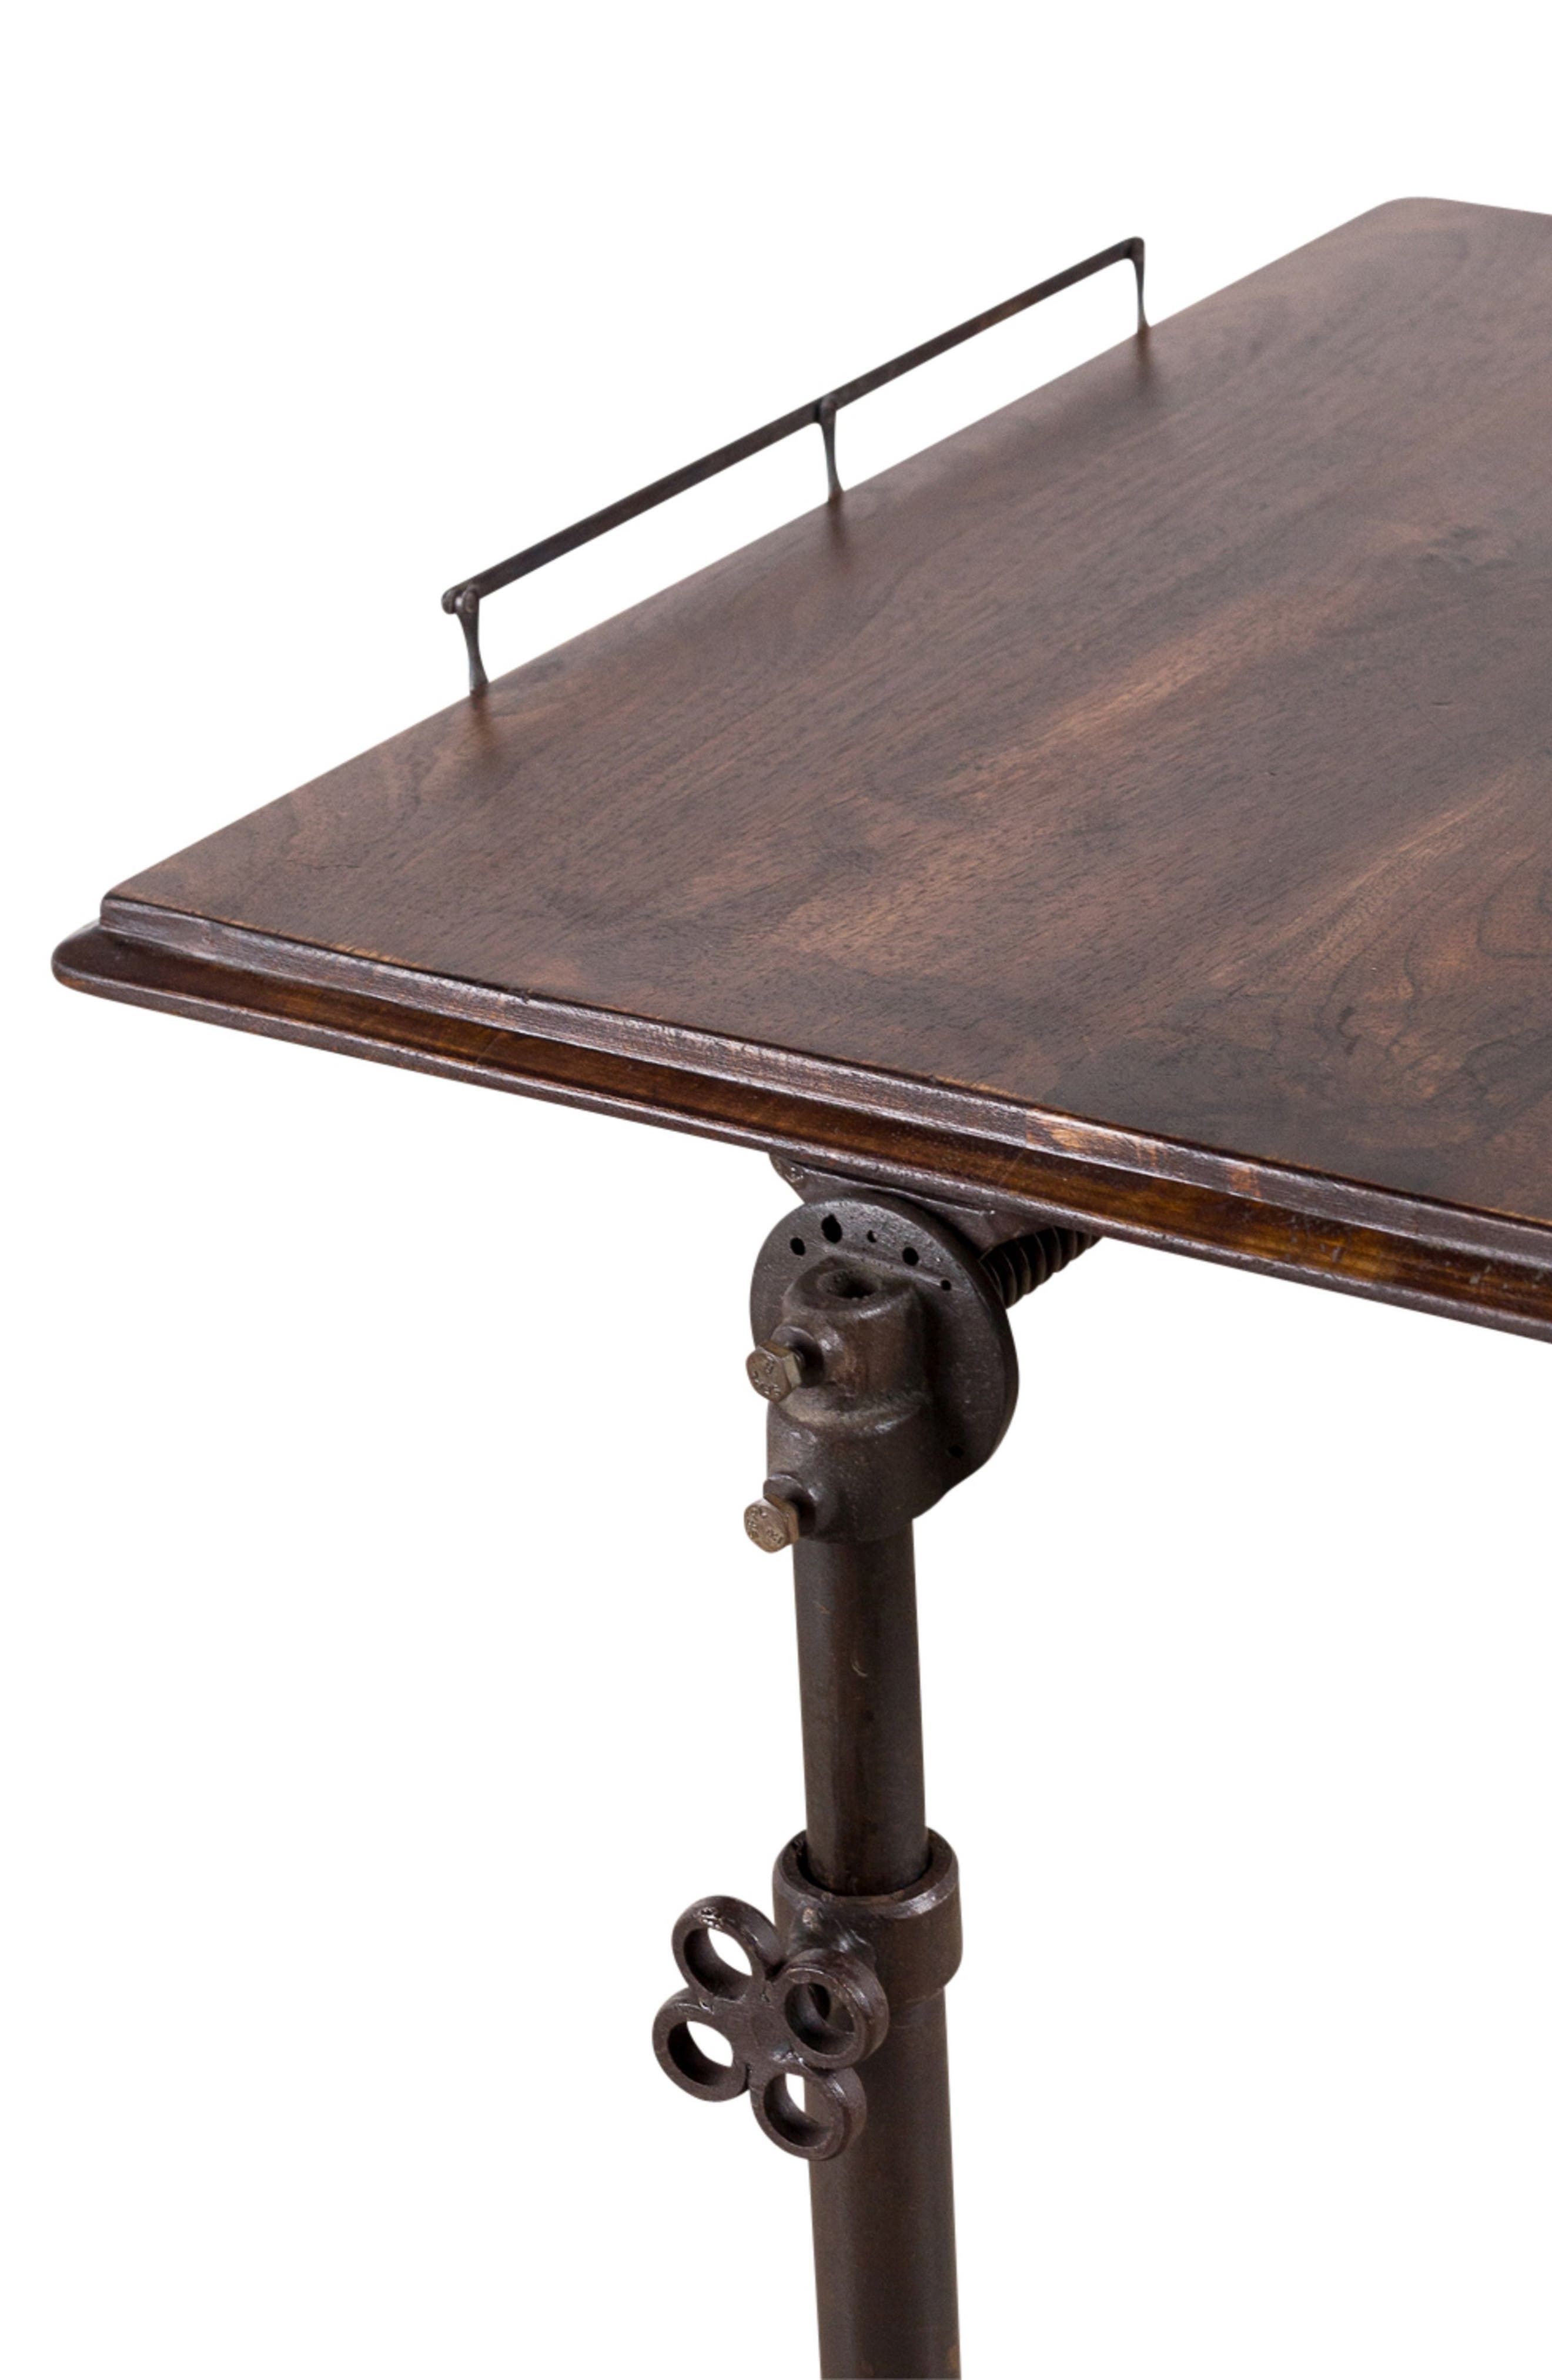 Chloe Reading Table,                             Alternate thumbnail 2, color,                             COFFEE BROWN CAST IRON